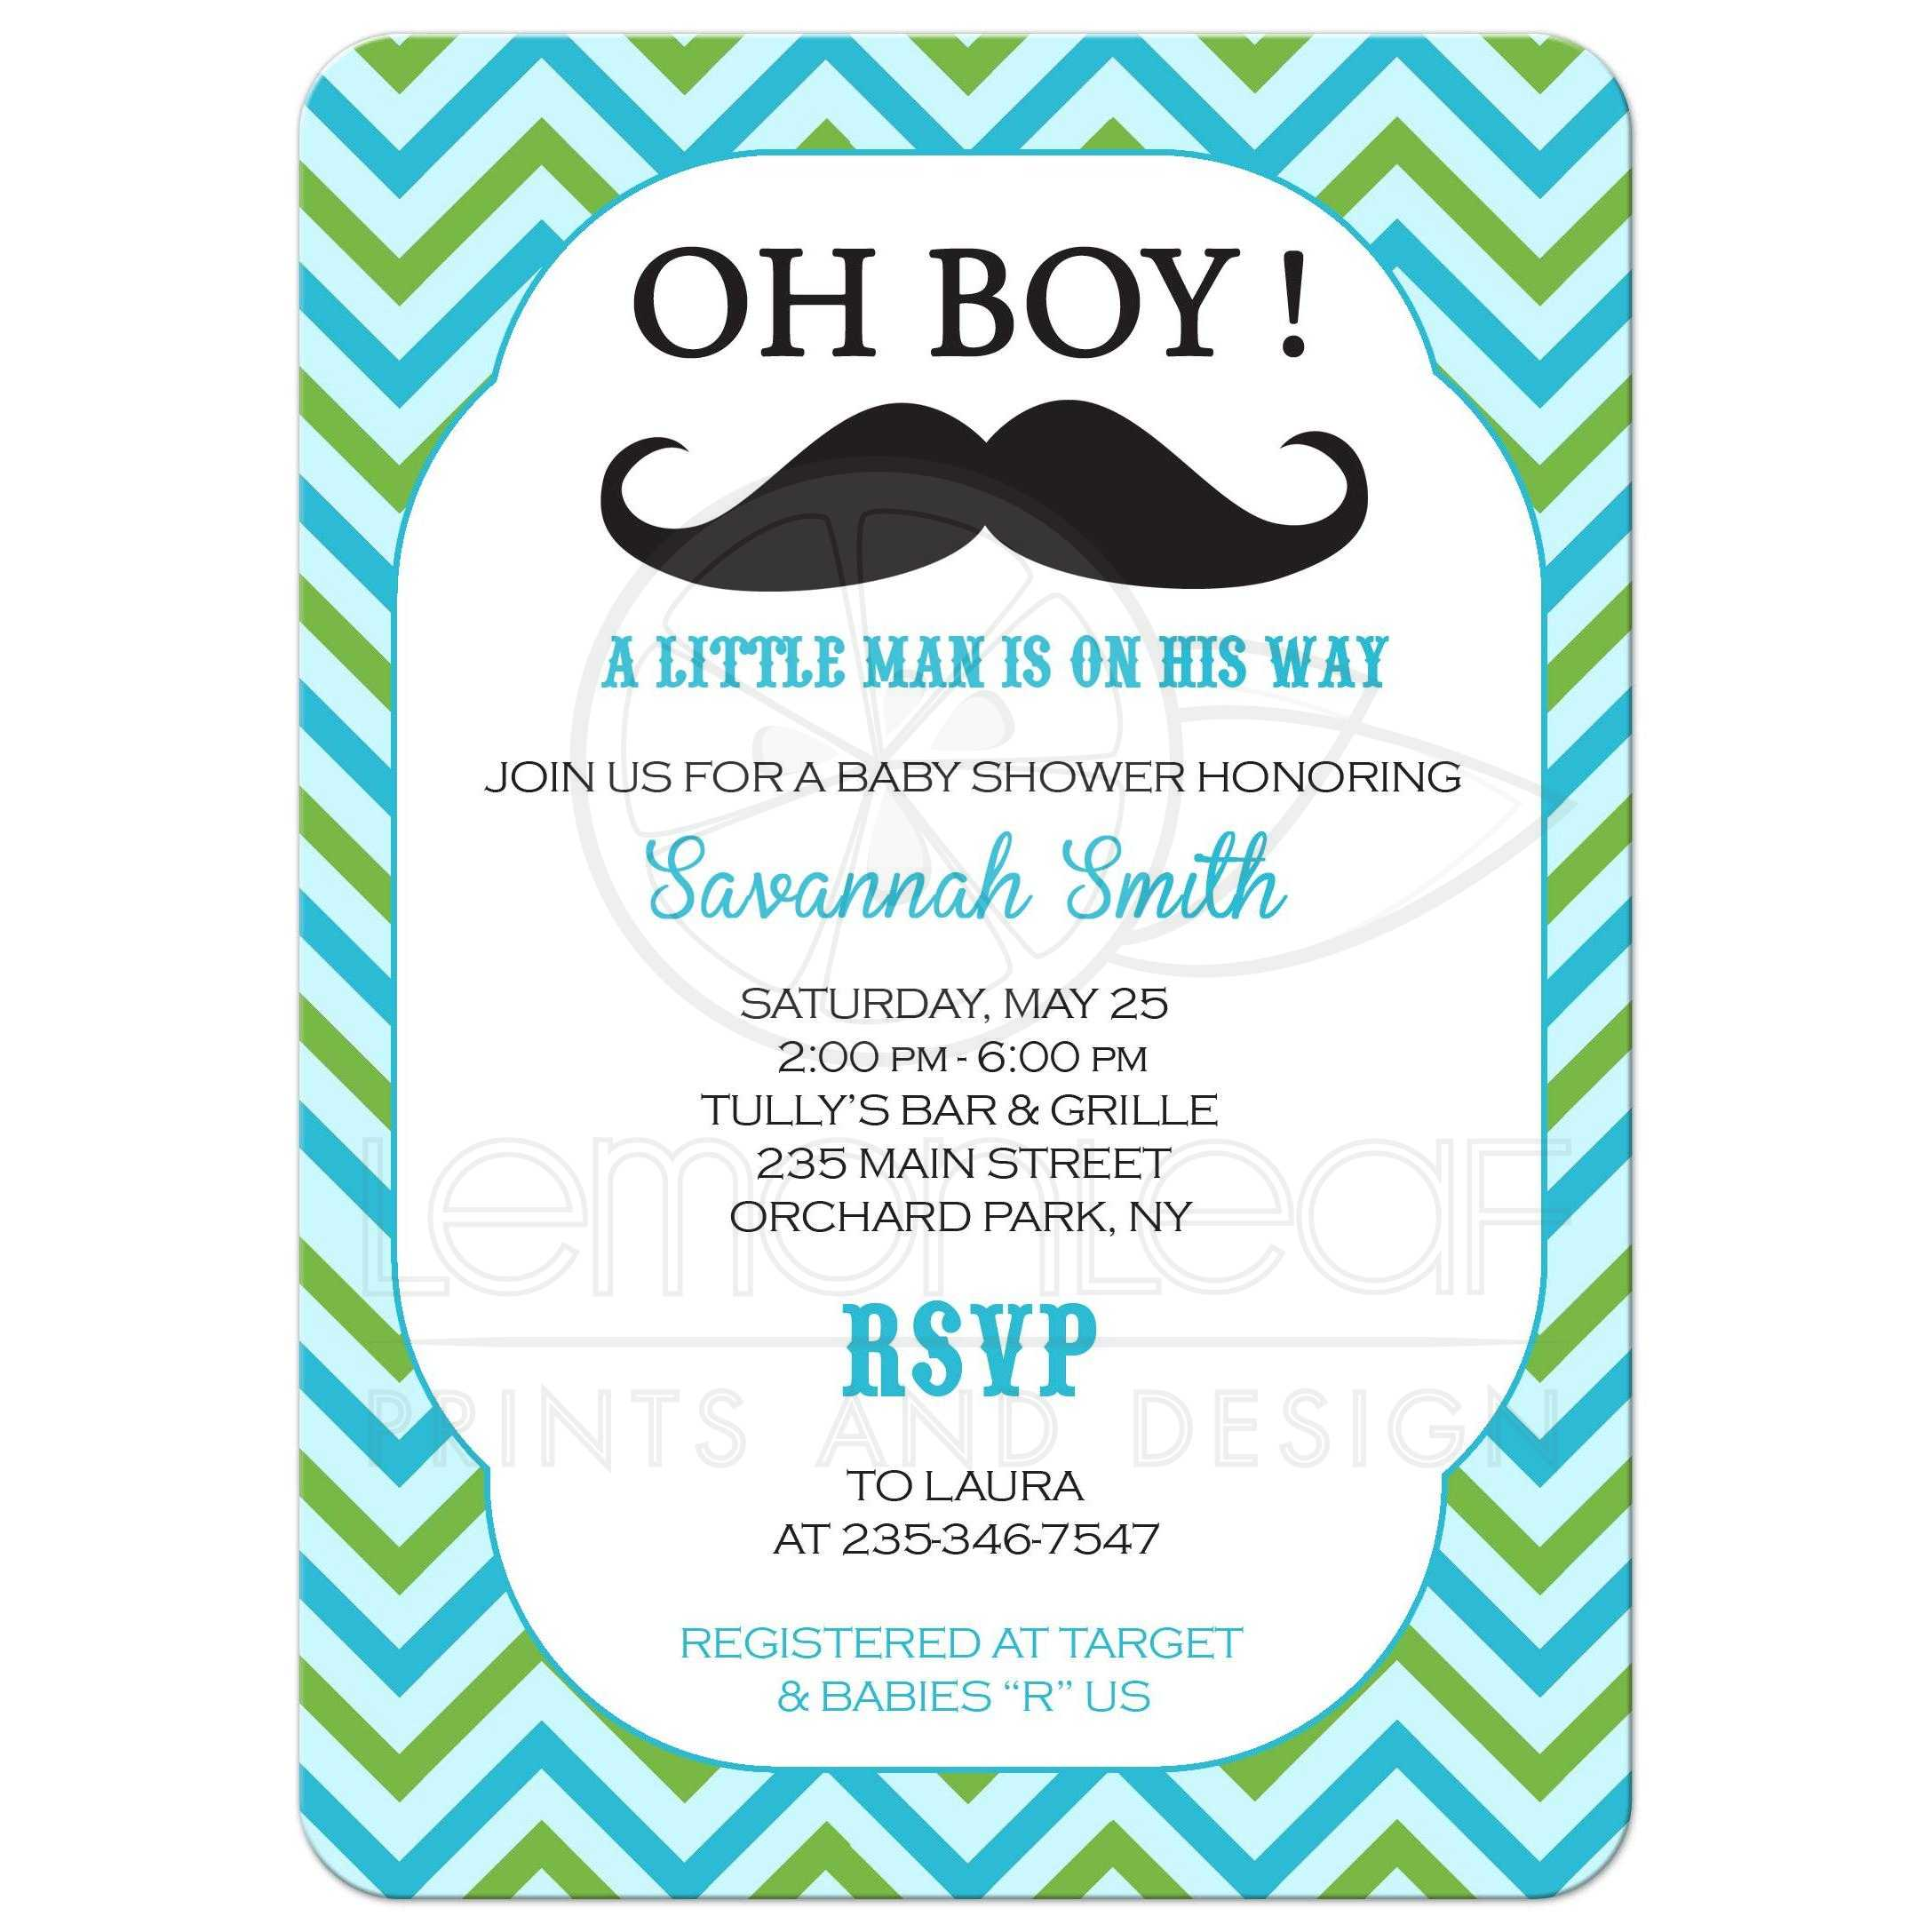 Open House Birthday Party Invitation Wording as good invitation template